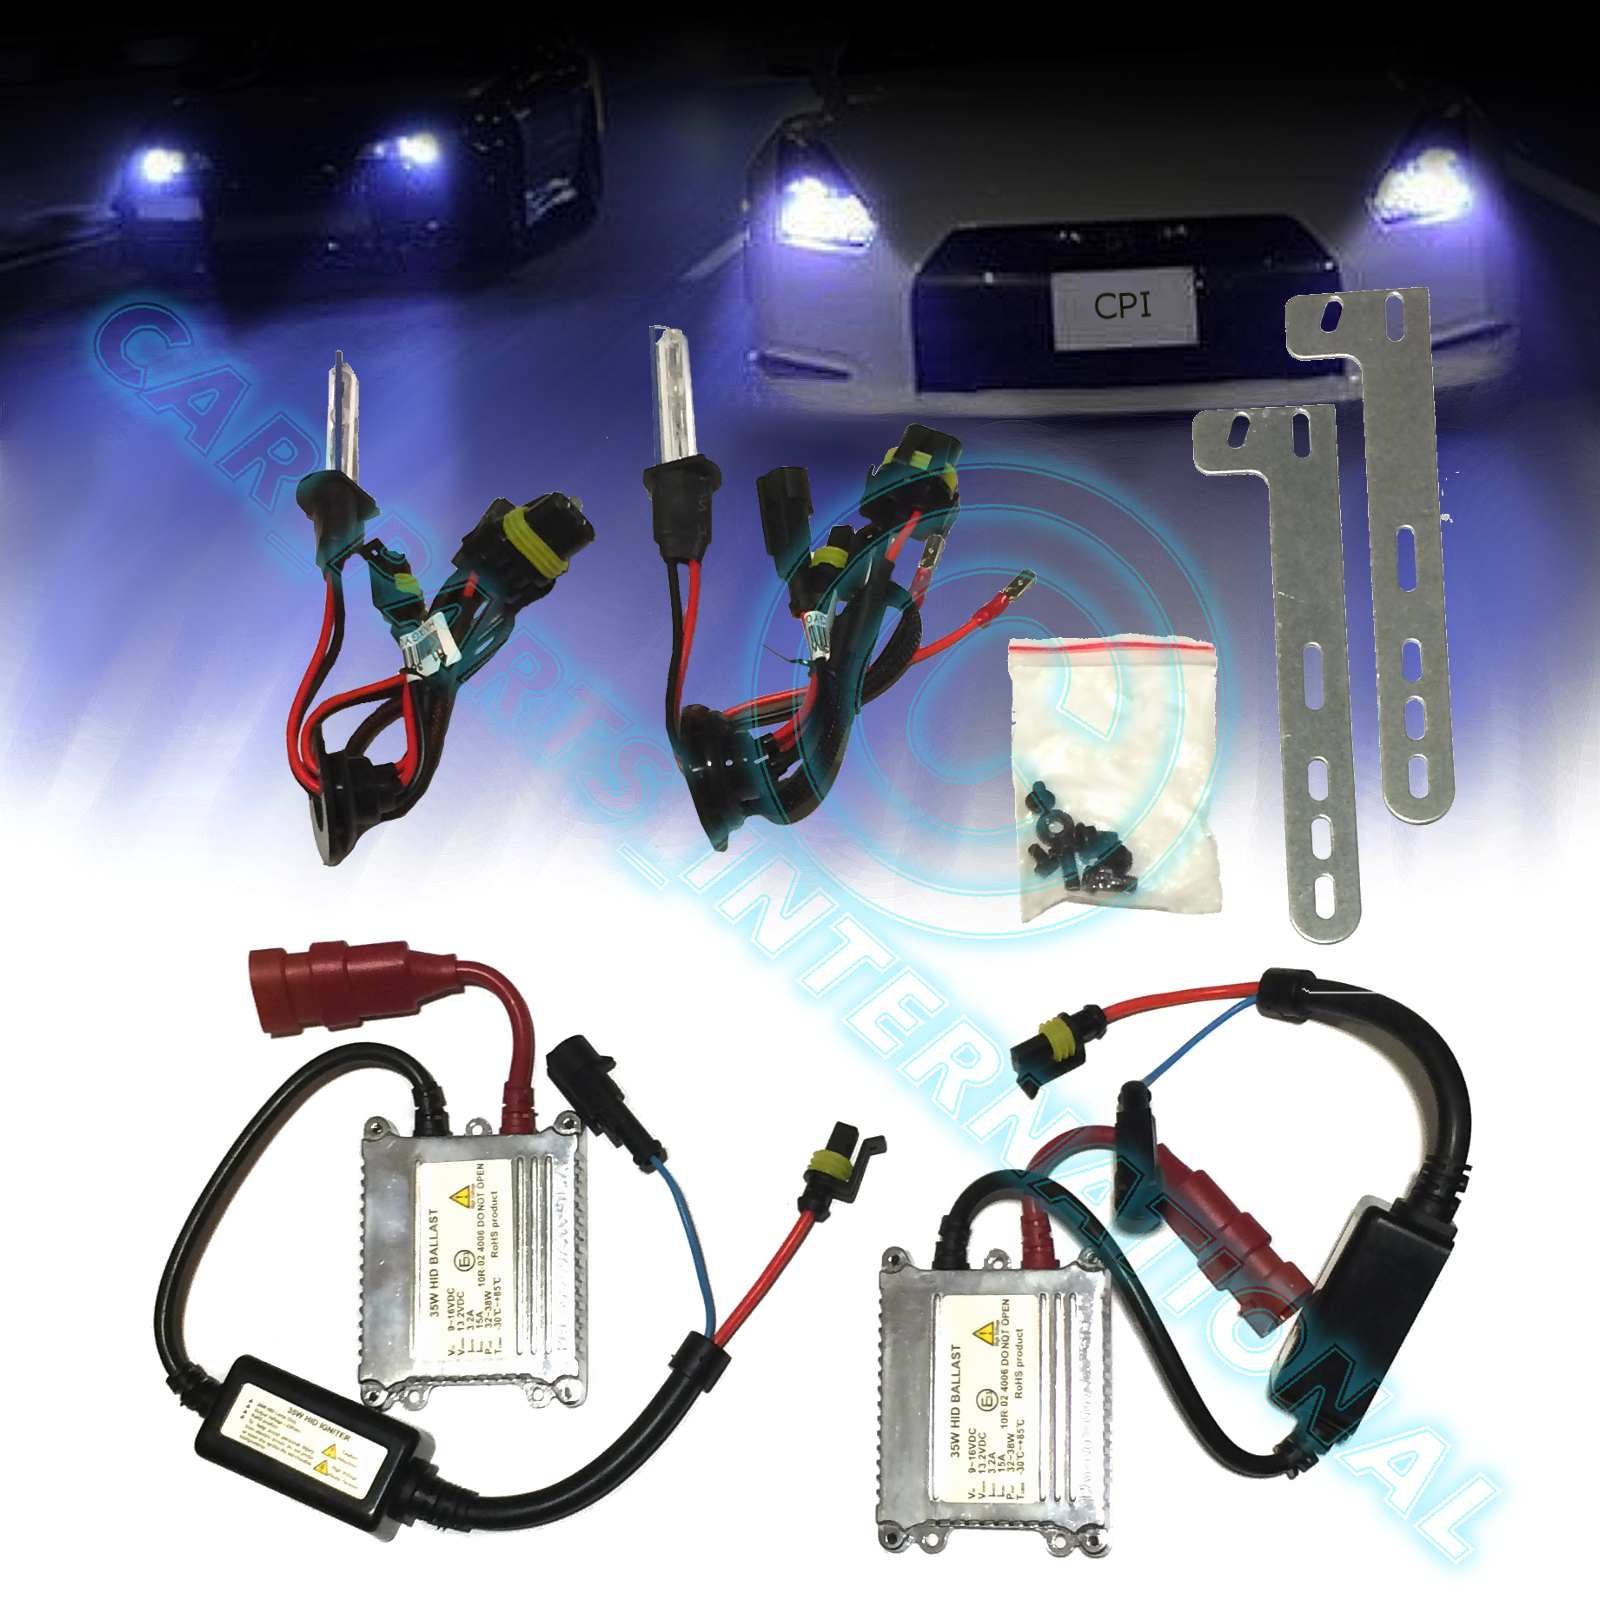 h7 8000k xenon canbus hid kit to fit citroen c4 grand picasso models ebay. Black Bedroom Furniture Sets. Home Design Ideas